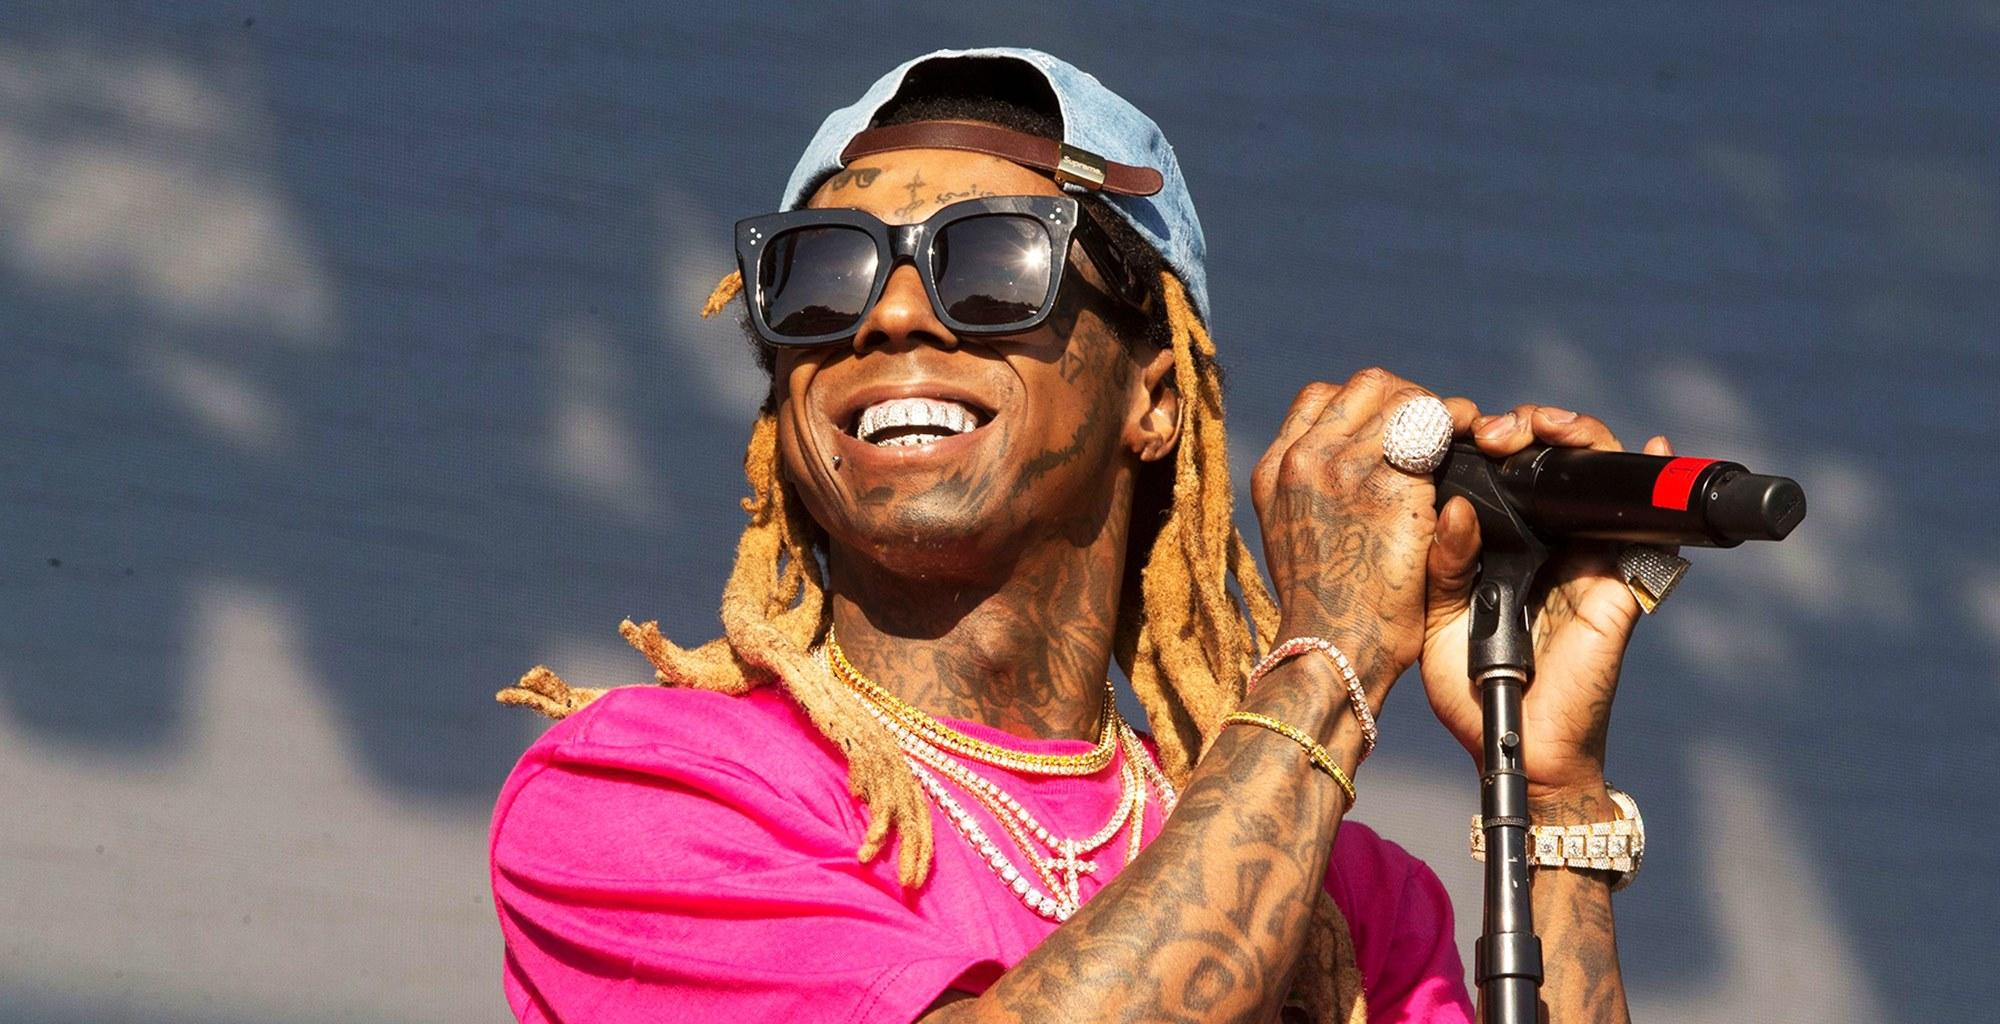 Lil Wayne Reacts With Epic Joke After Getting Caught Transporting Drugs And A Gold-Plated Gun On His Private Plane